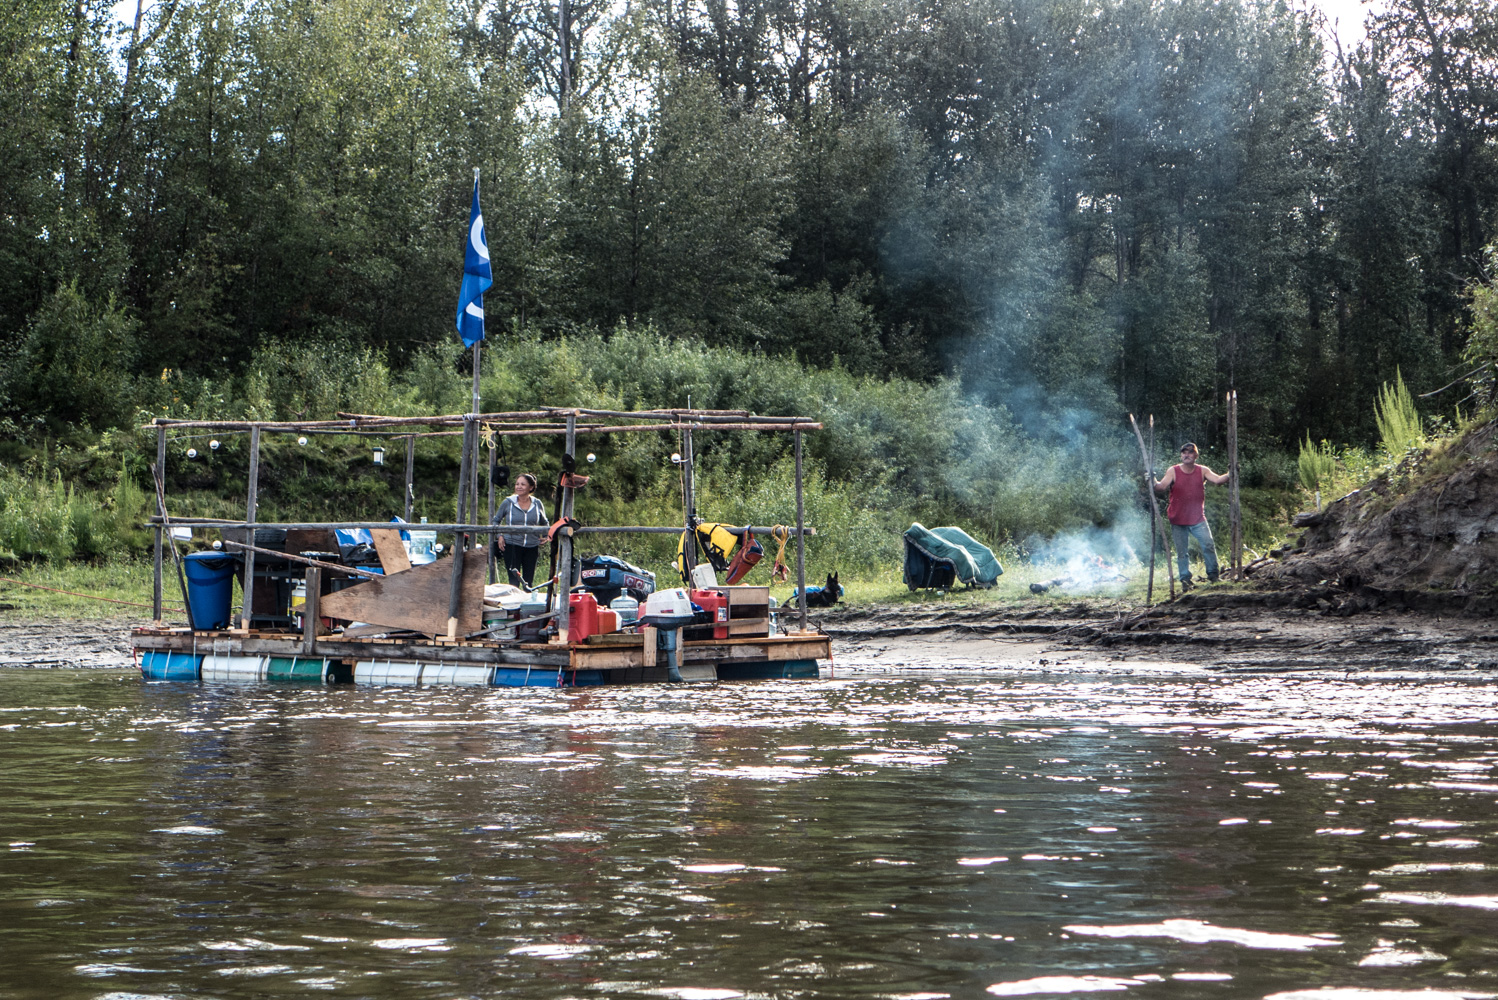 Lloyd Grant built this raft in Fort McMurray and spent 10 days floating it up to Fort Chipewyan to make a dock for a family member. August 2015.